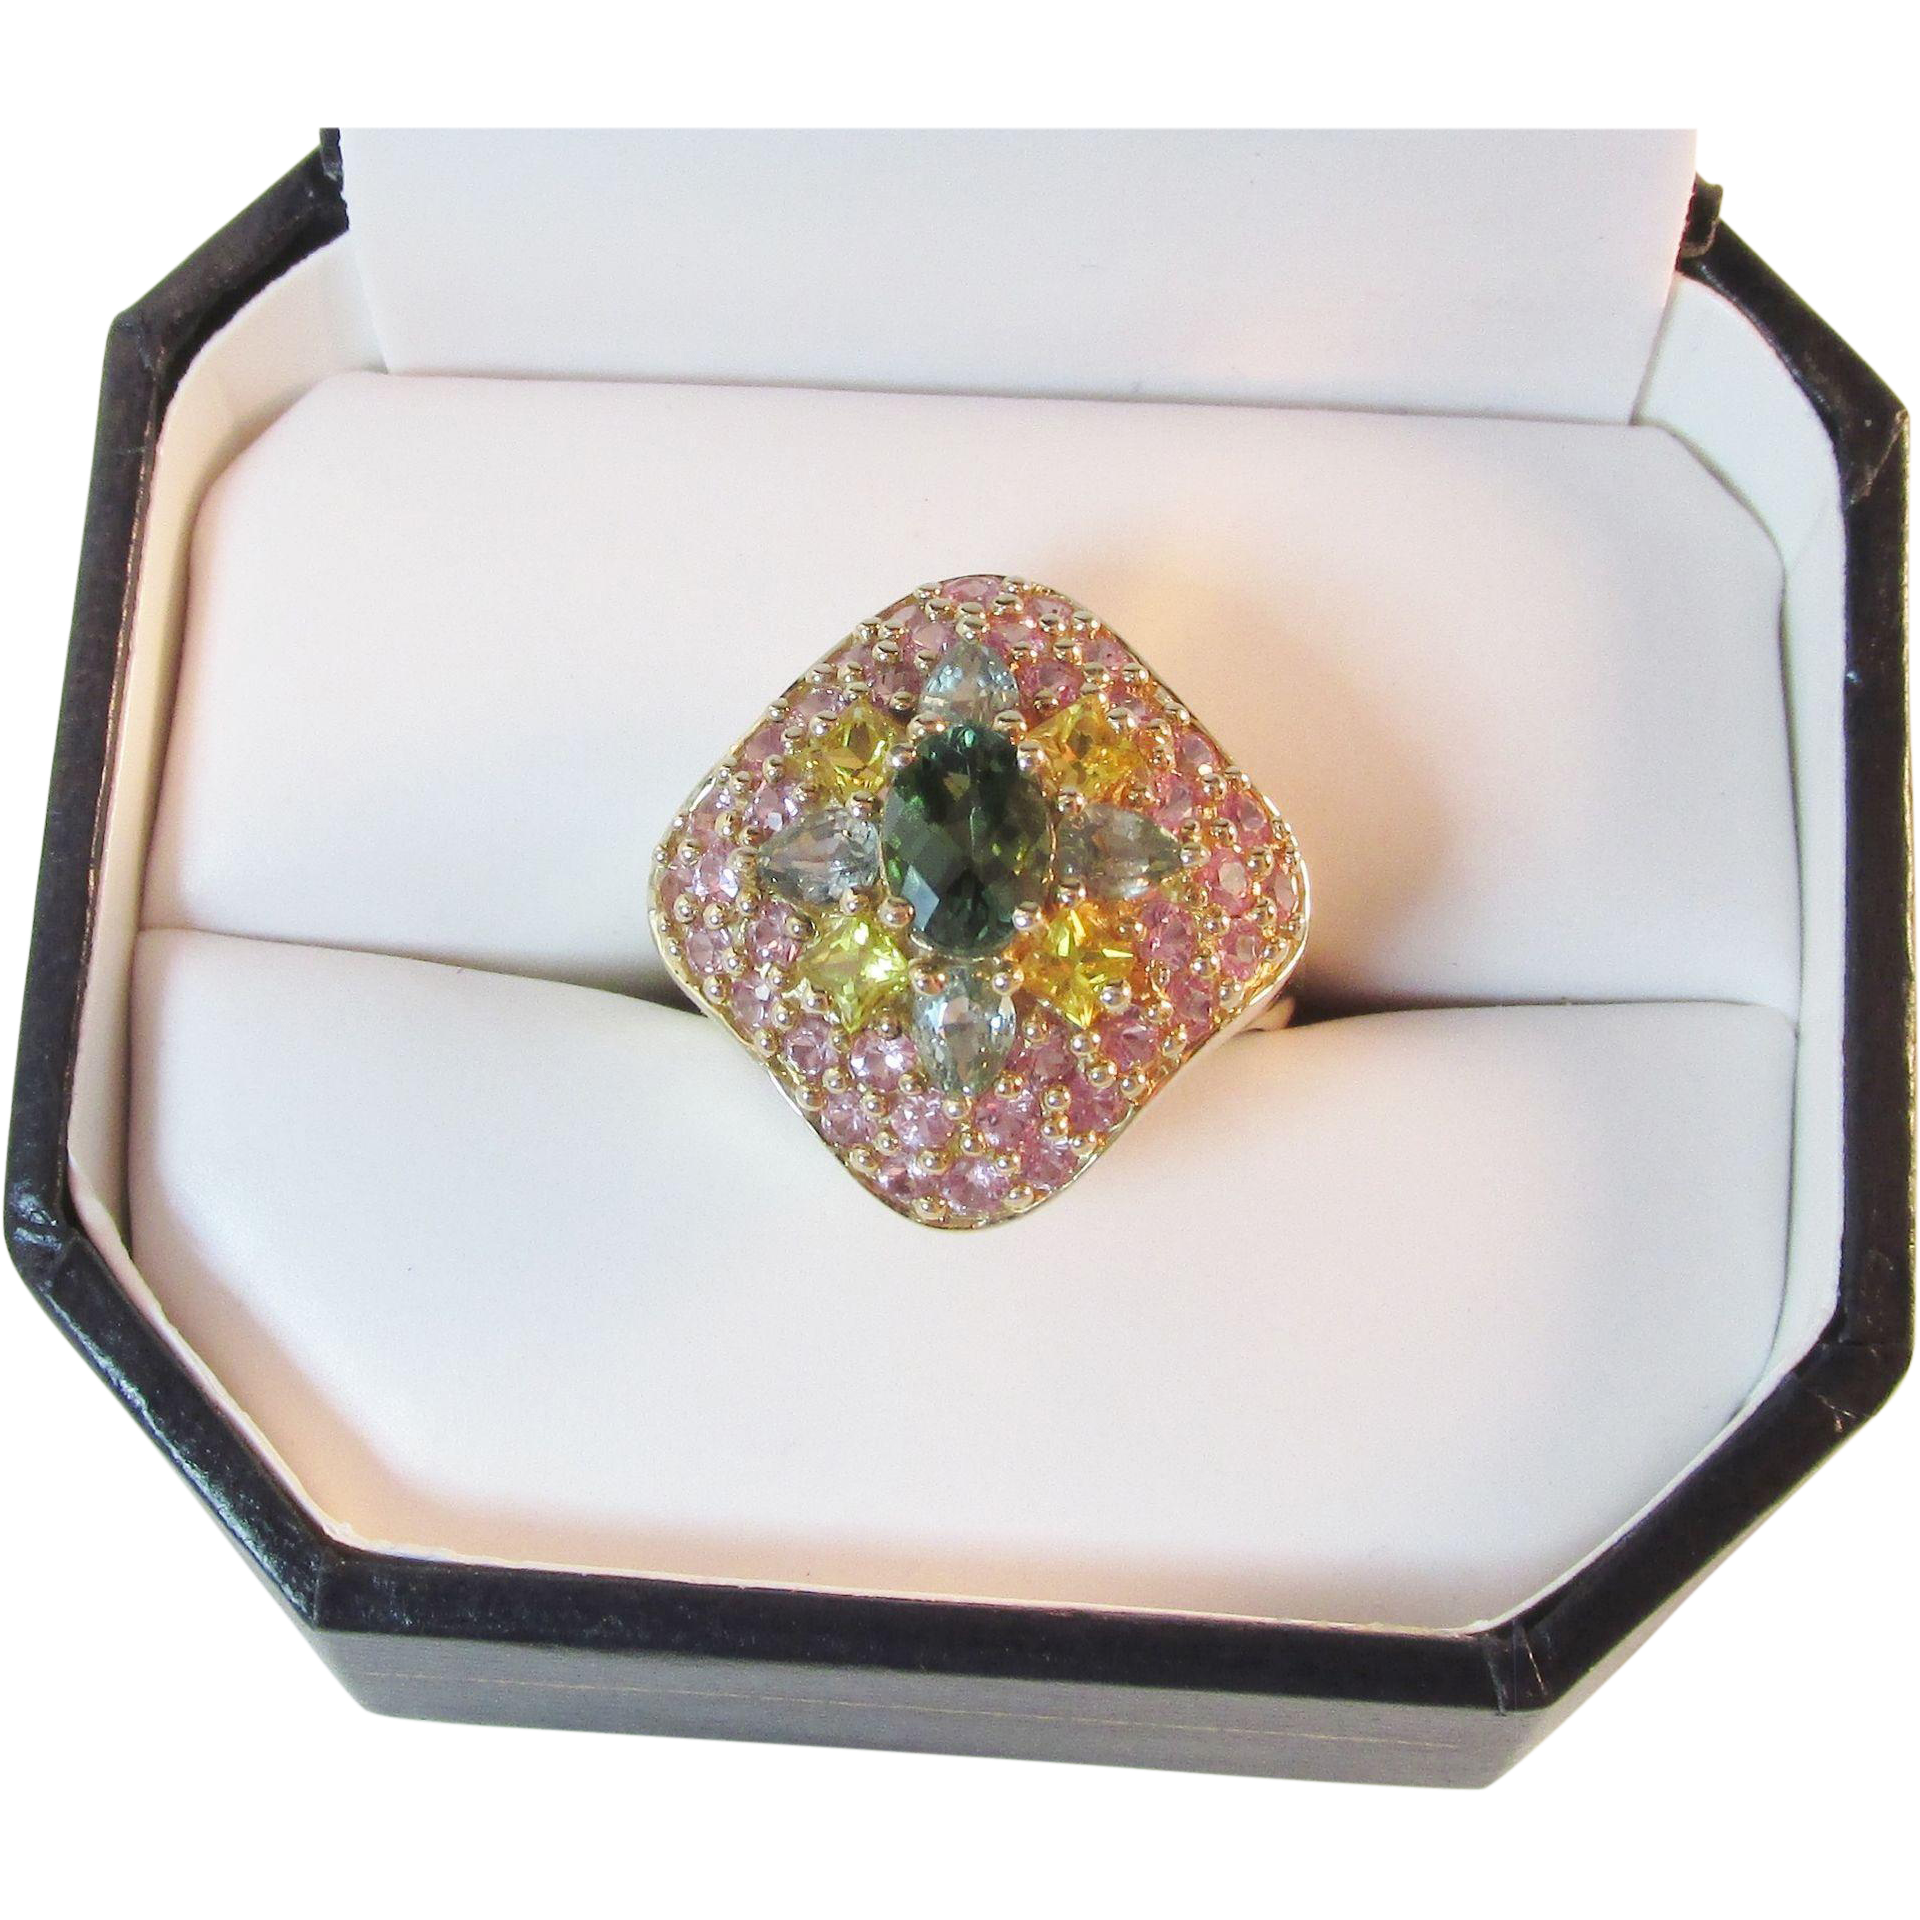 Outrageous 14k Pink & Teal Tourmaline, Yellow Sapphire Cluster Cocktail Ring Vintage